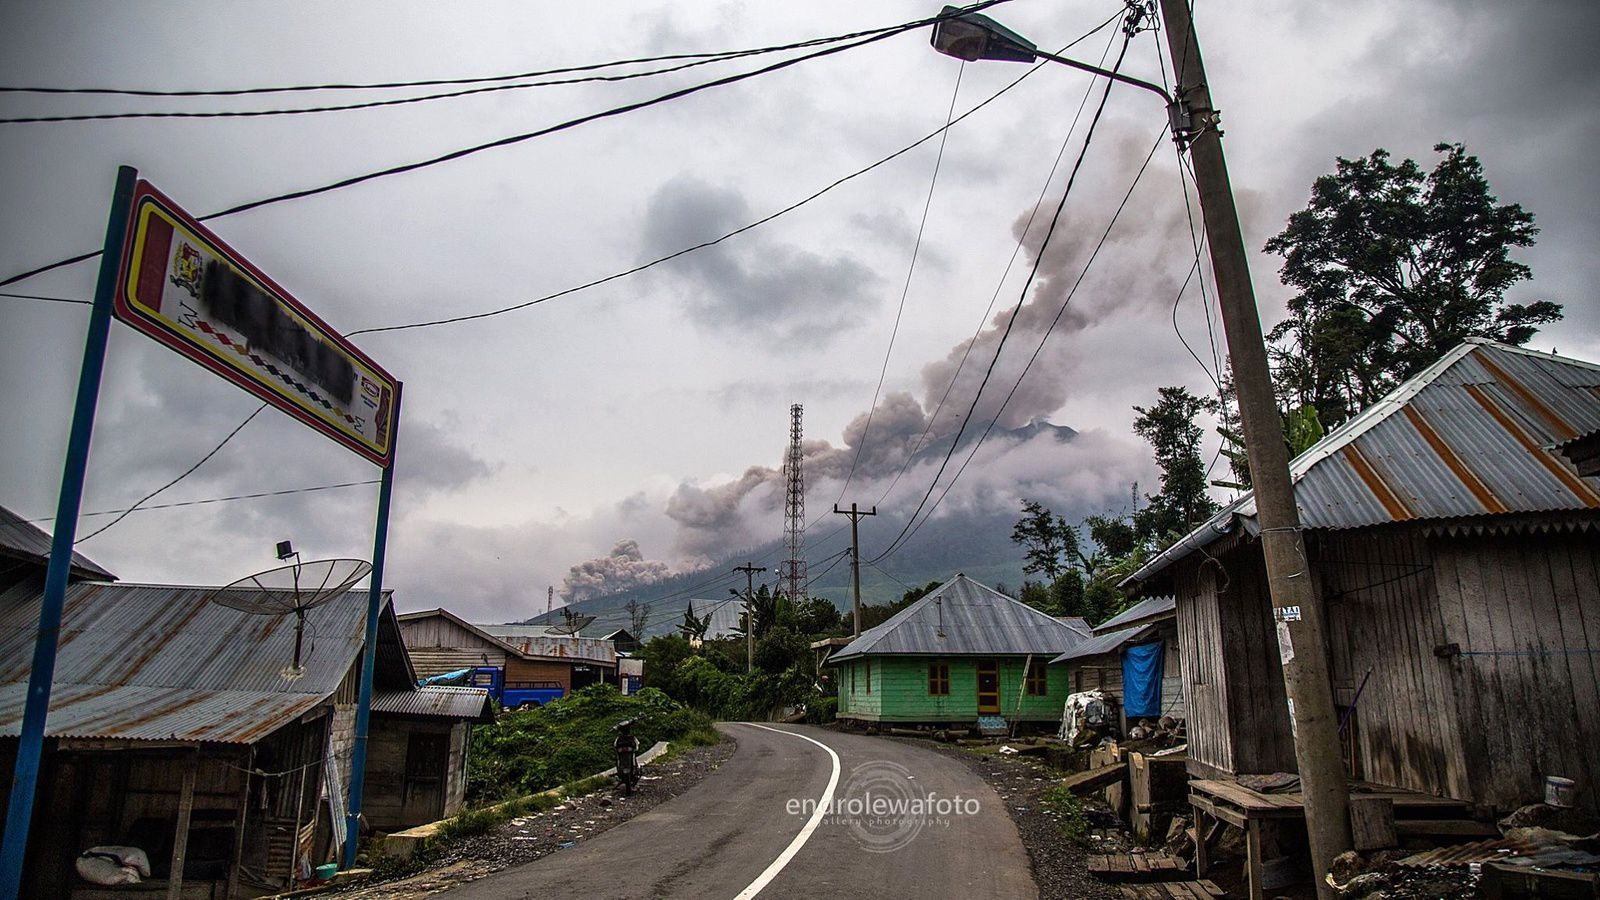 Sinabung - 22.03.2016 / 15h35 - photo endrolewa